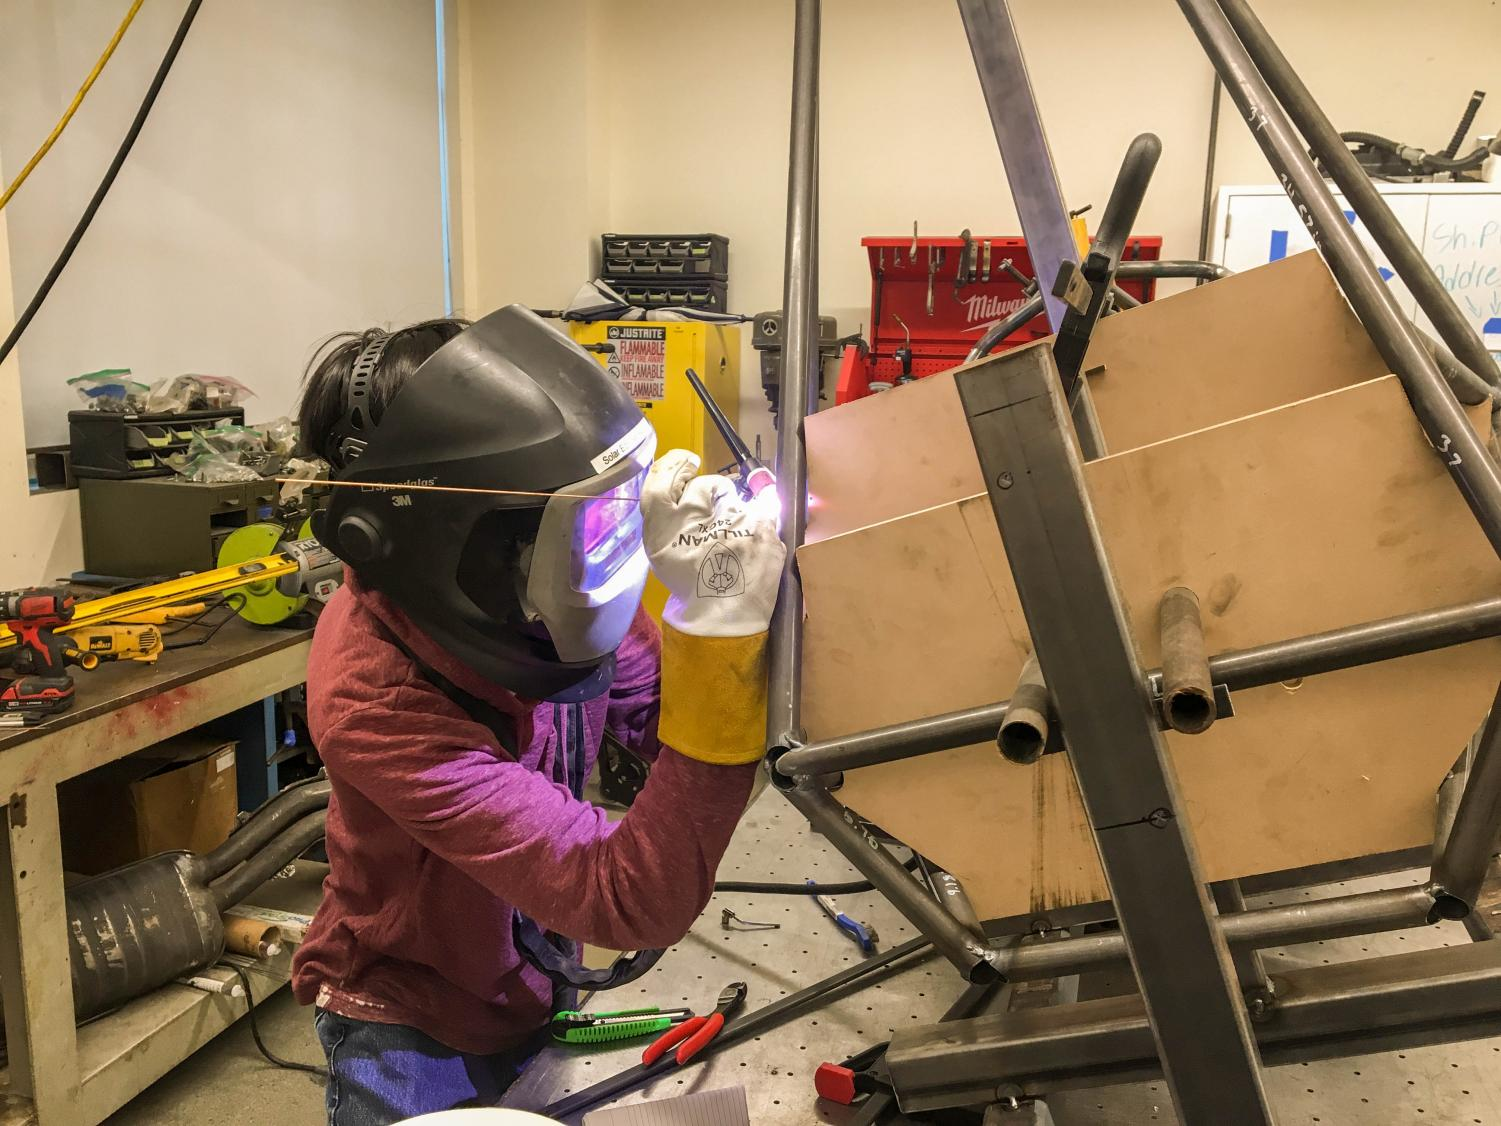 The Aztec Racing club continues working on project thanks to funds raised through GoFundMe.